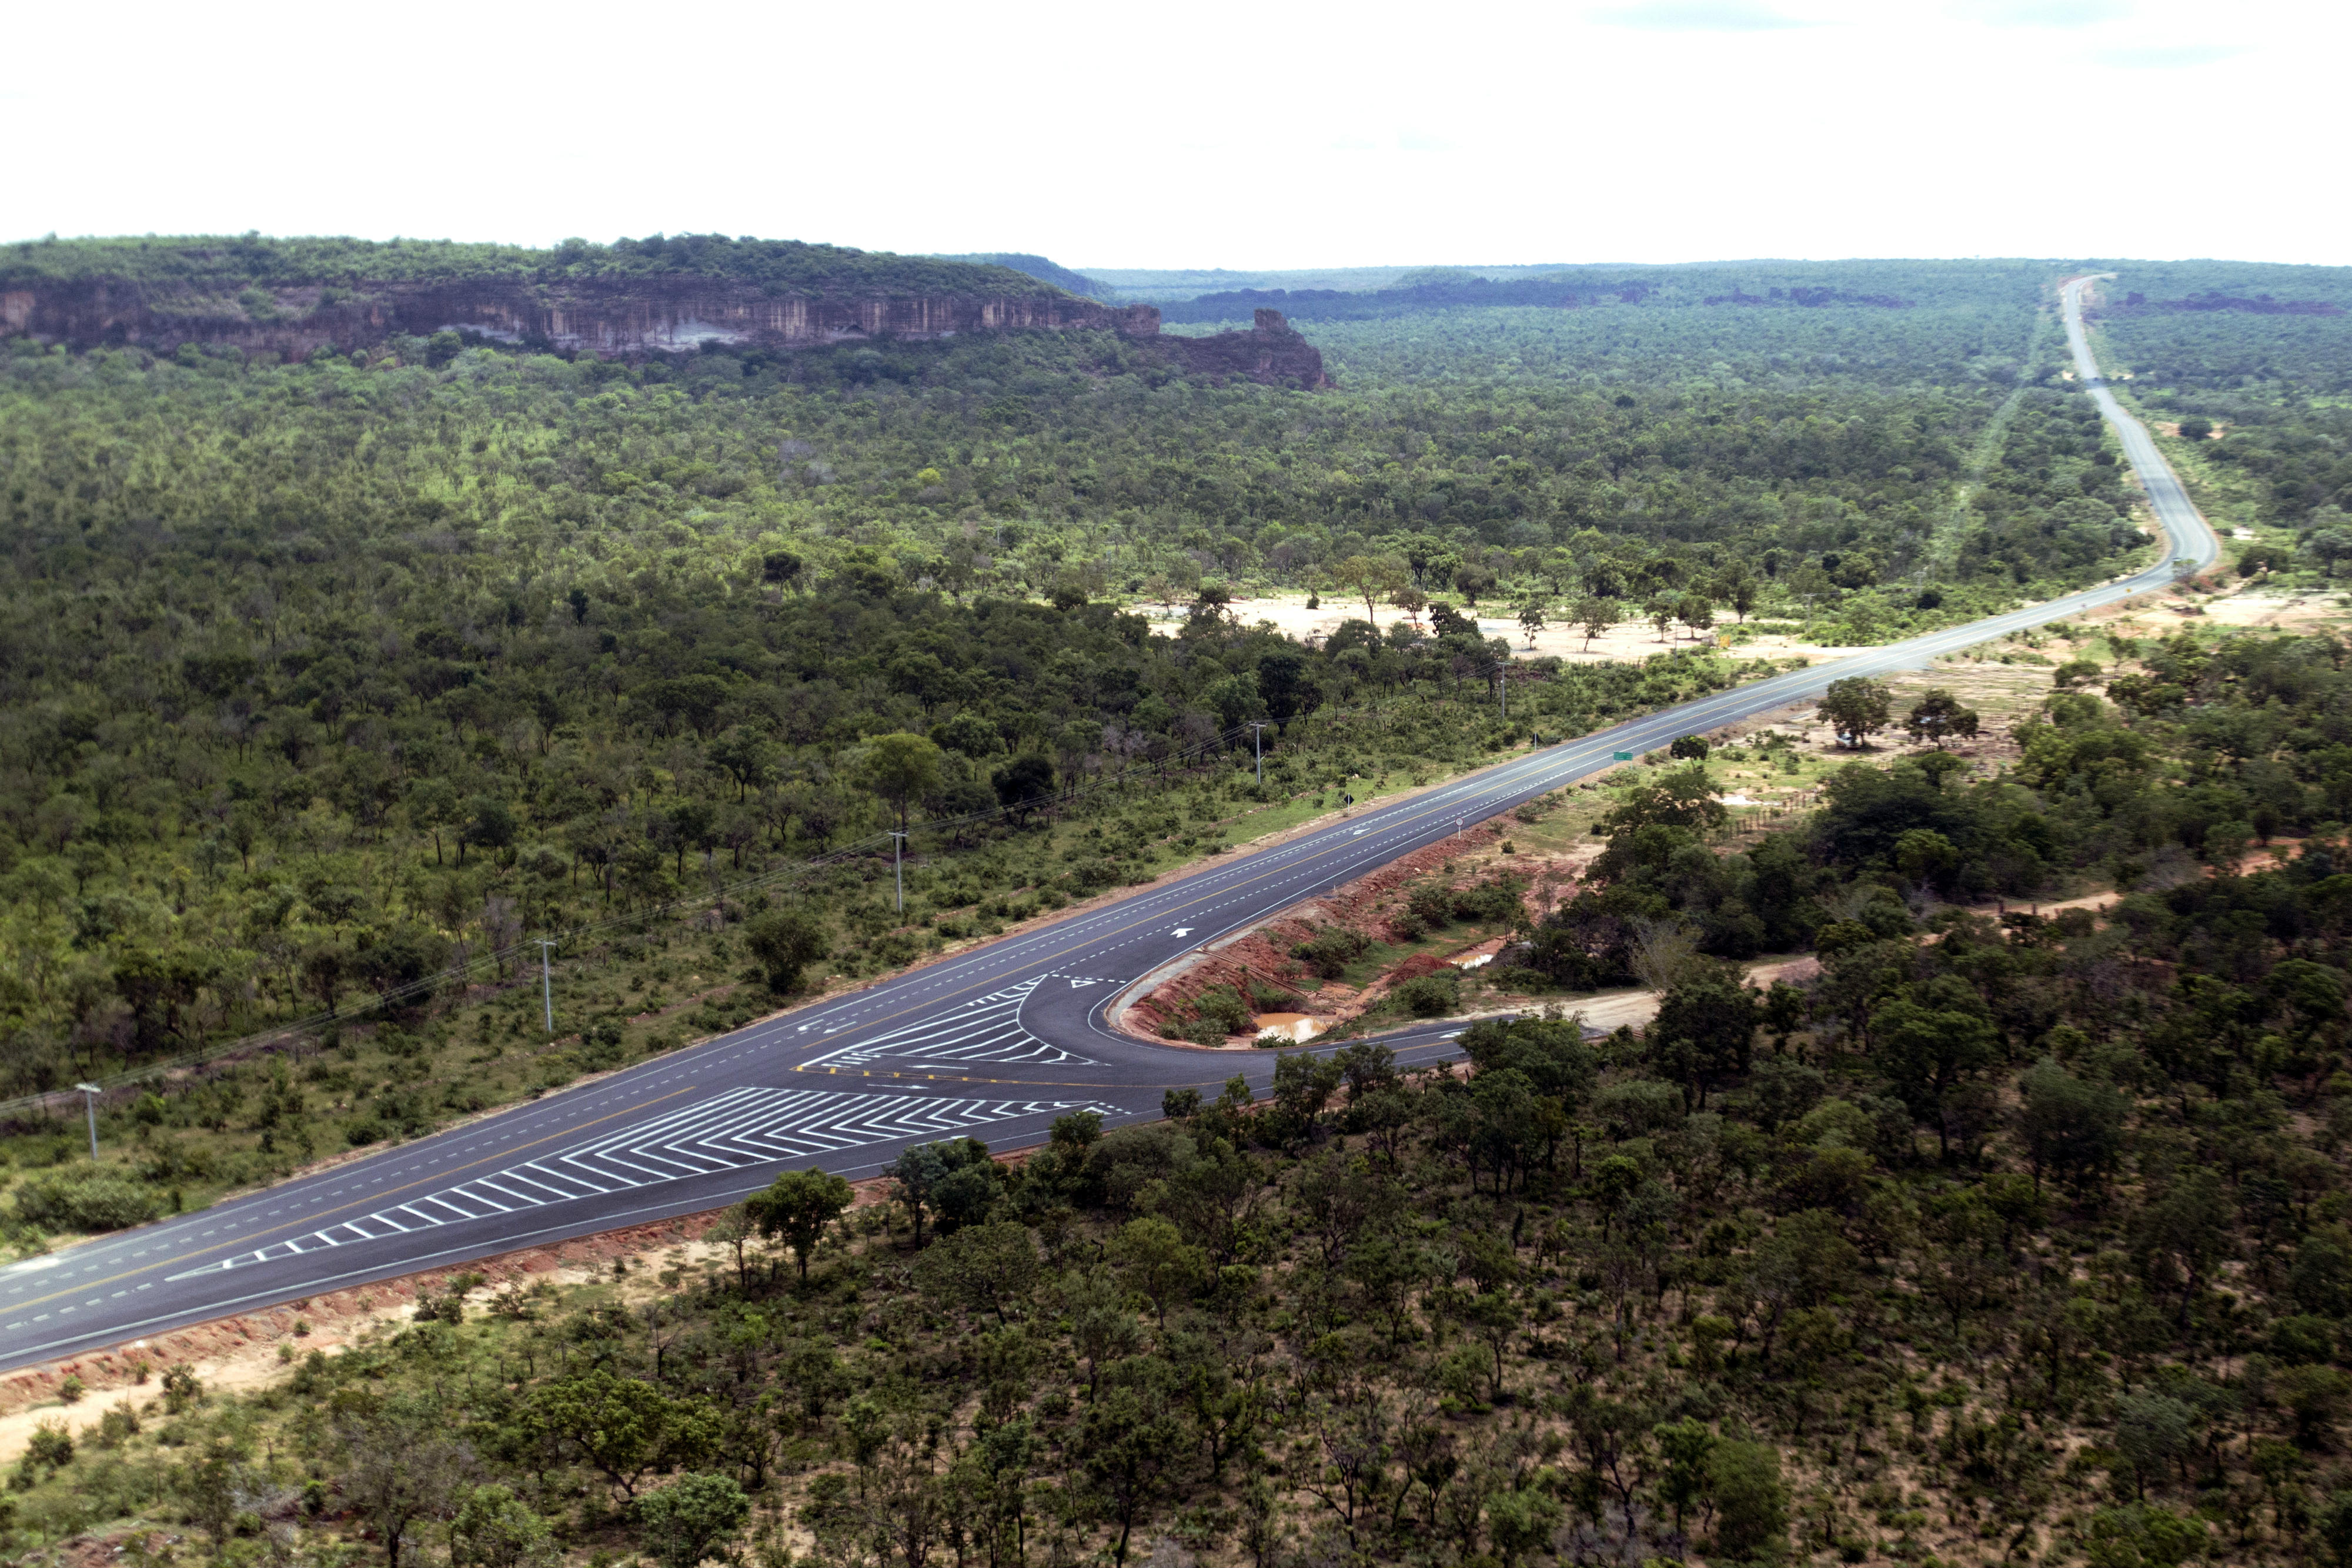 Construction of two stretches of BR 235 motorway, one connecting Gilbués to Santa Filomena, 130.2 km long, and another connecting Bom Jesus to Caracol, 150. 7 km long, both in the state of Piauí, Brazil